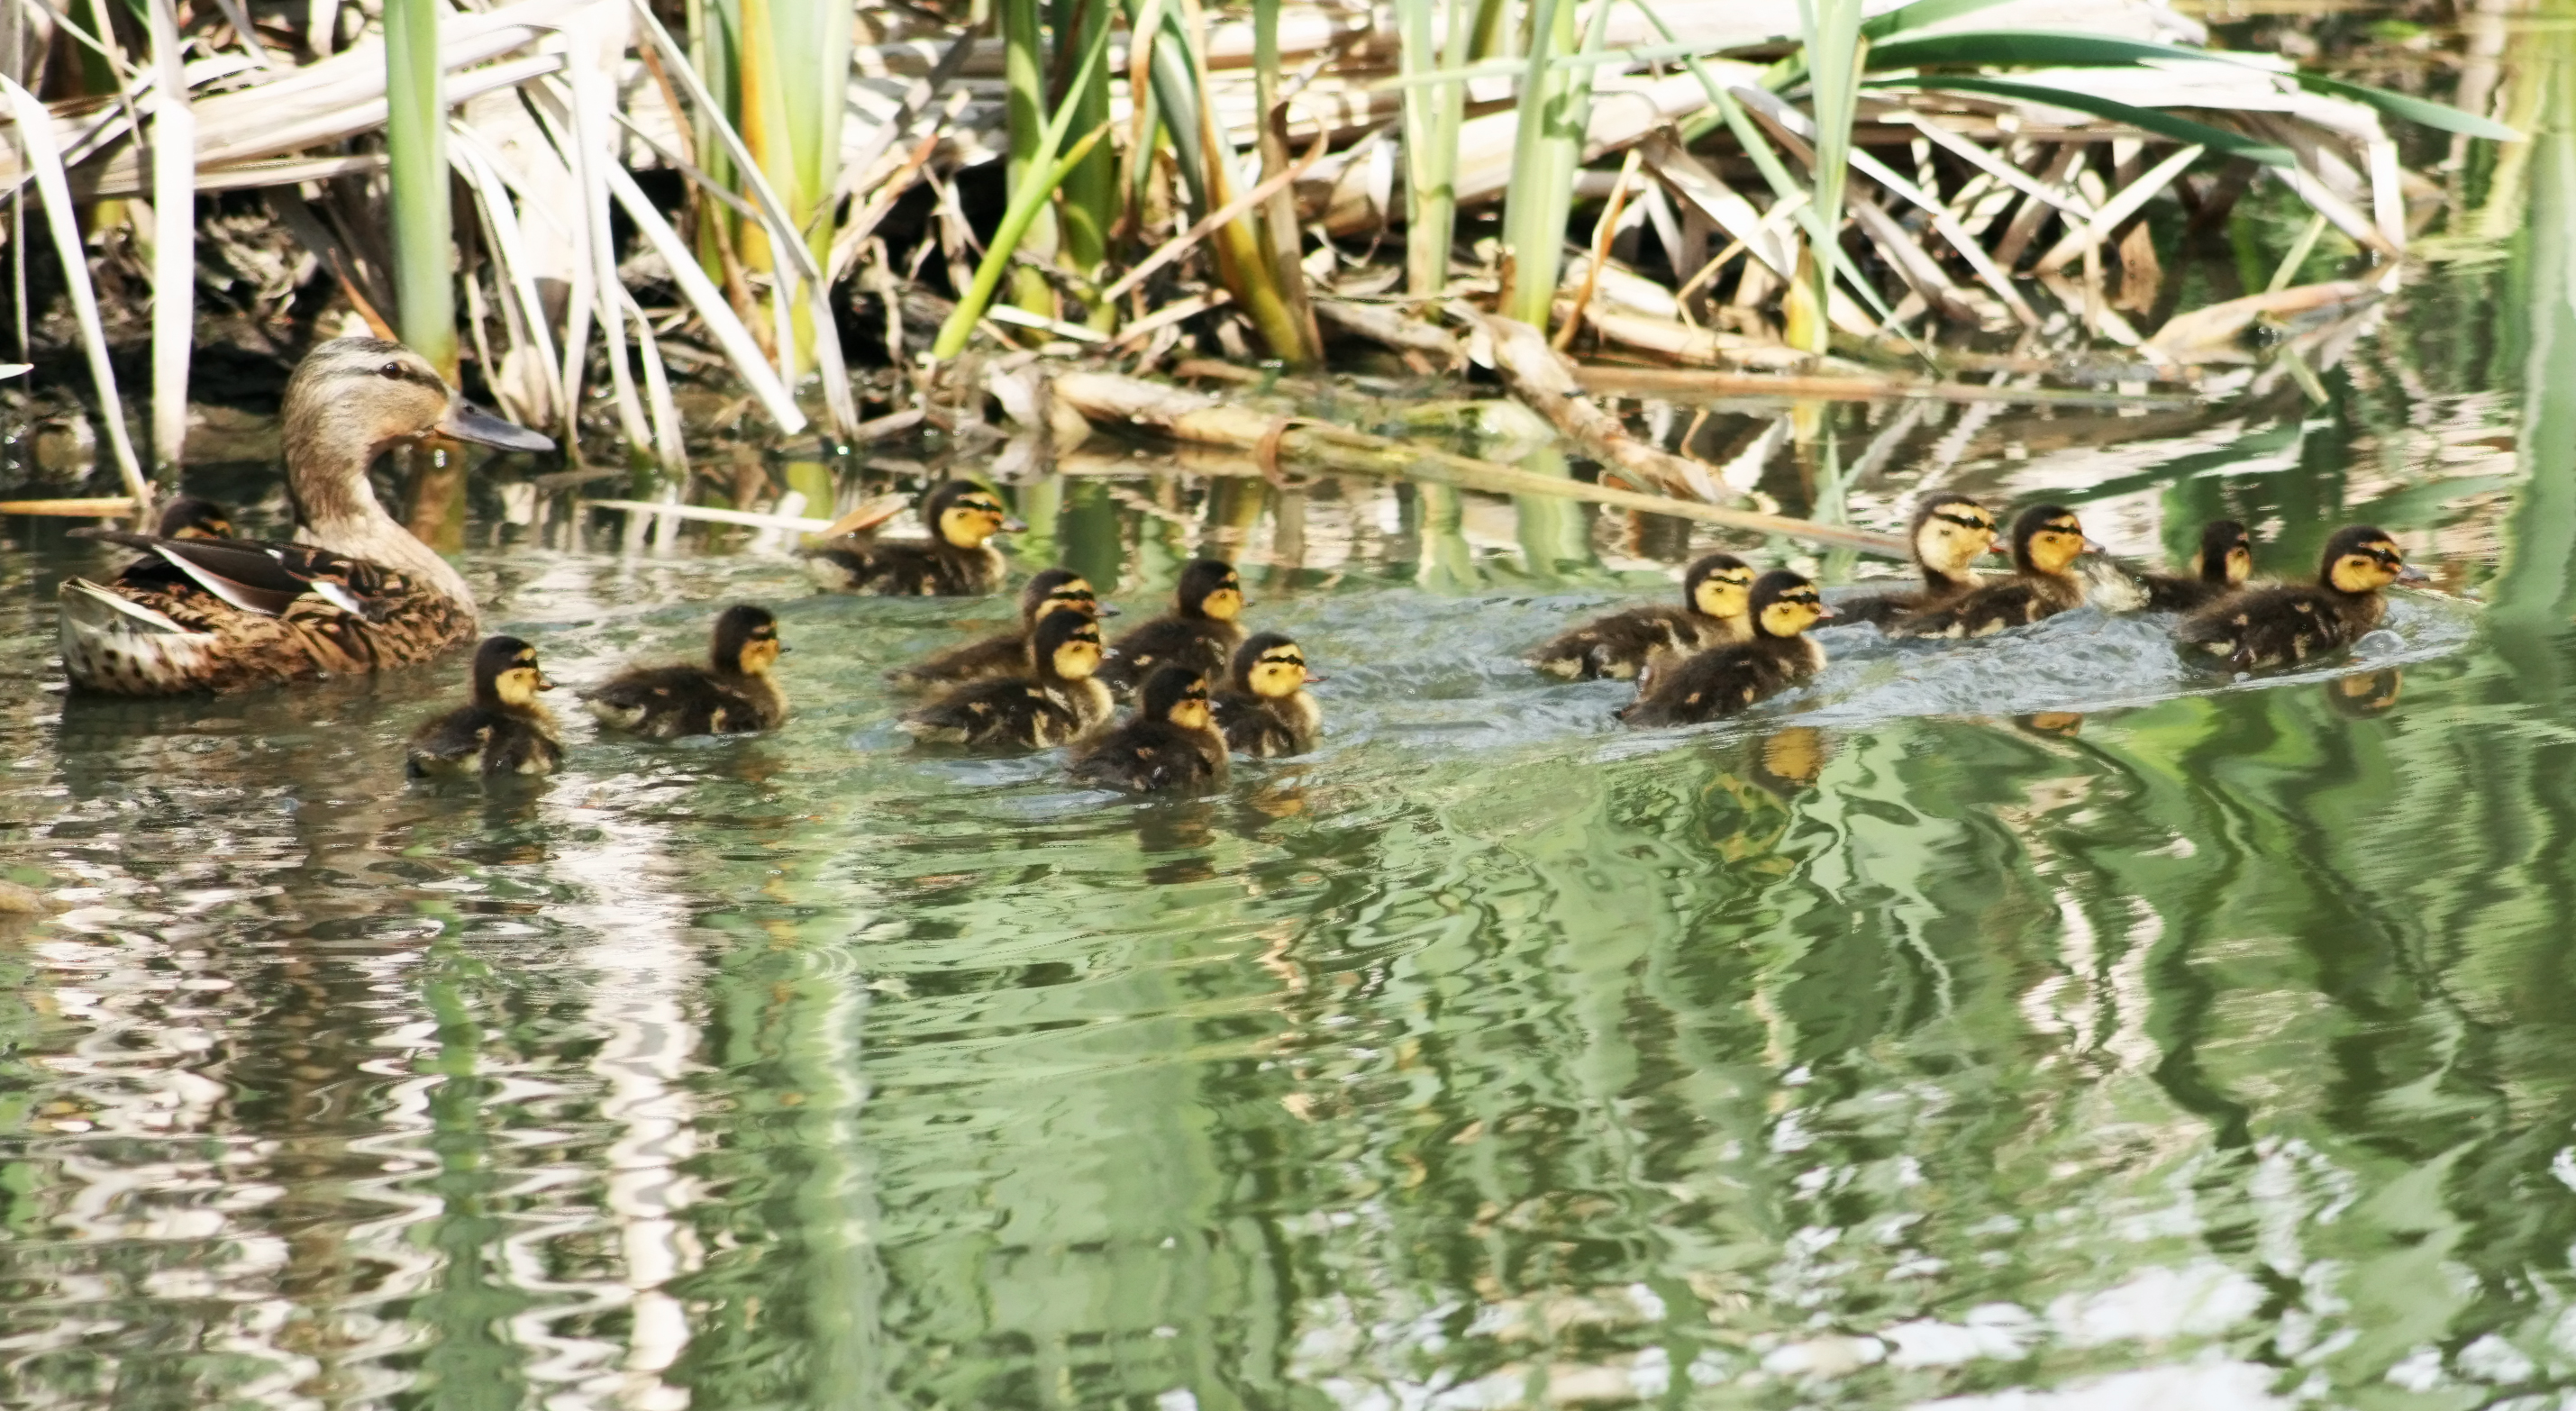 Mother duck with her ducklings in the garden of remembrance pond